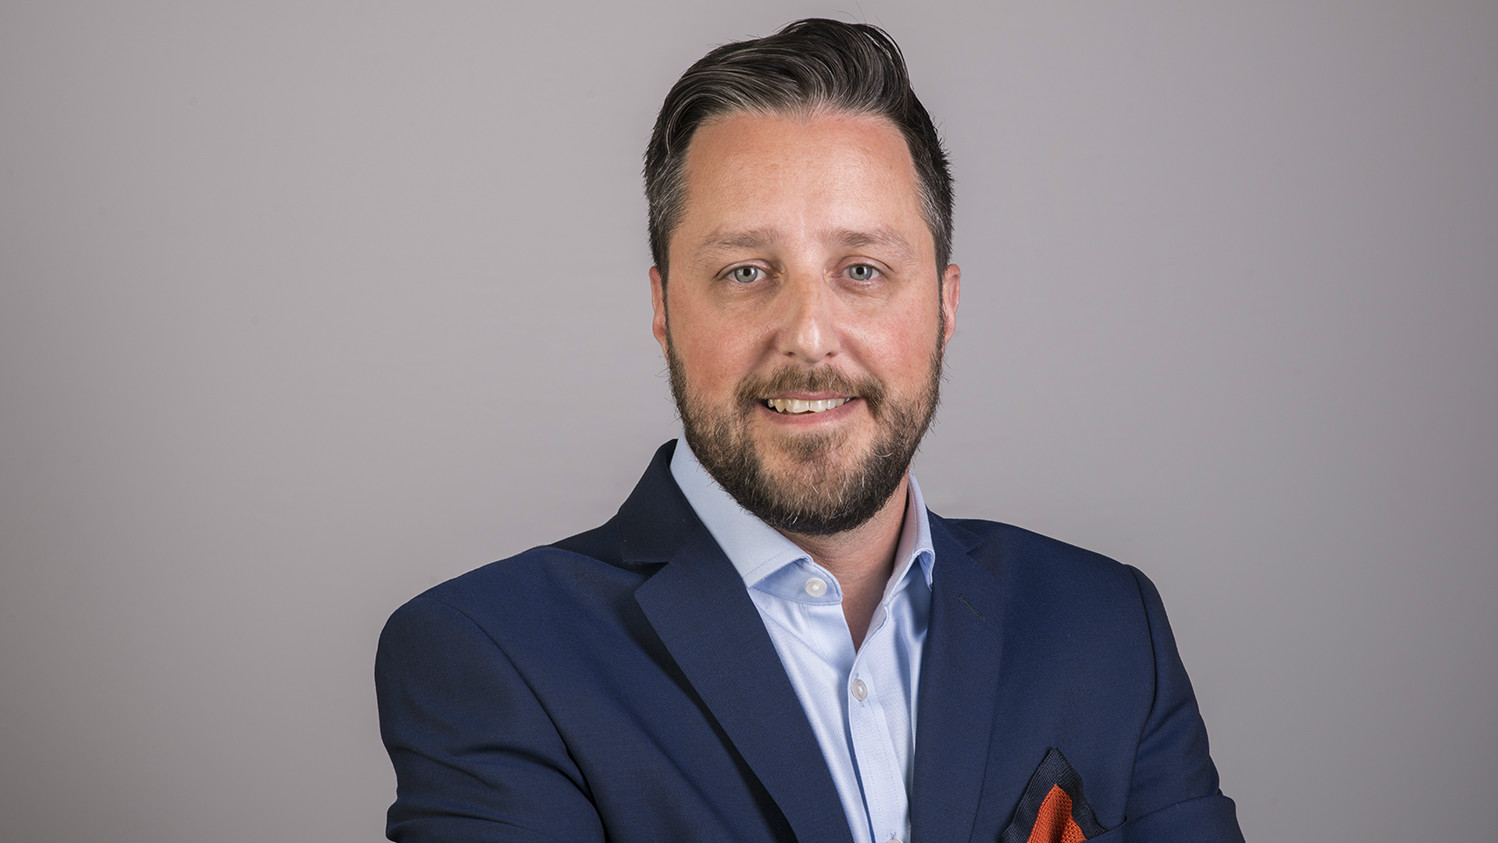 NMi appoints new Business Development Director